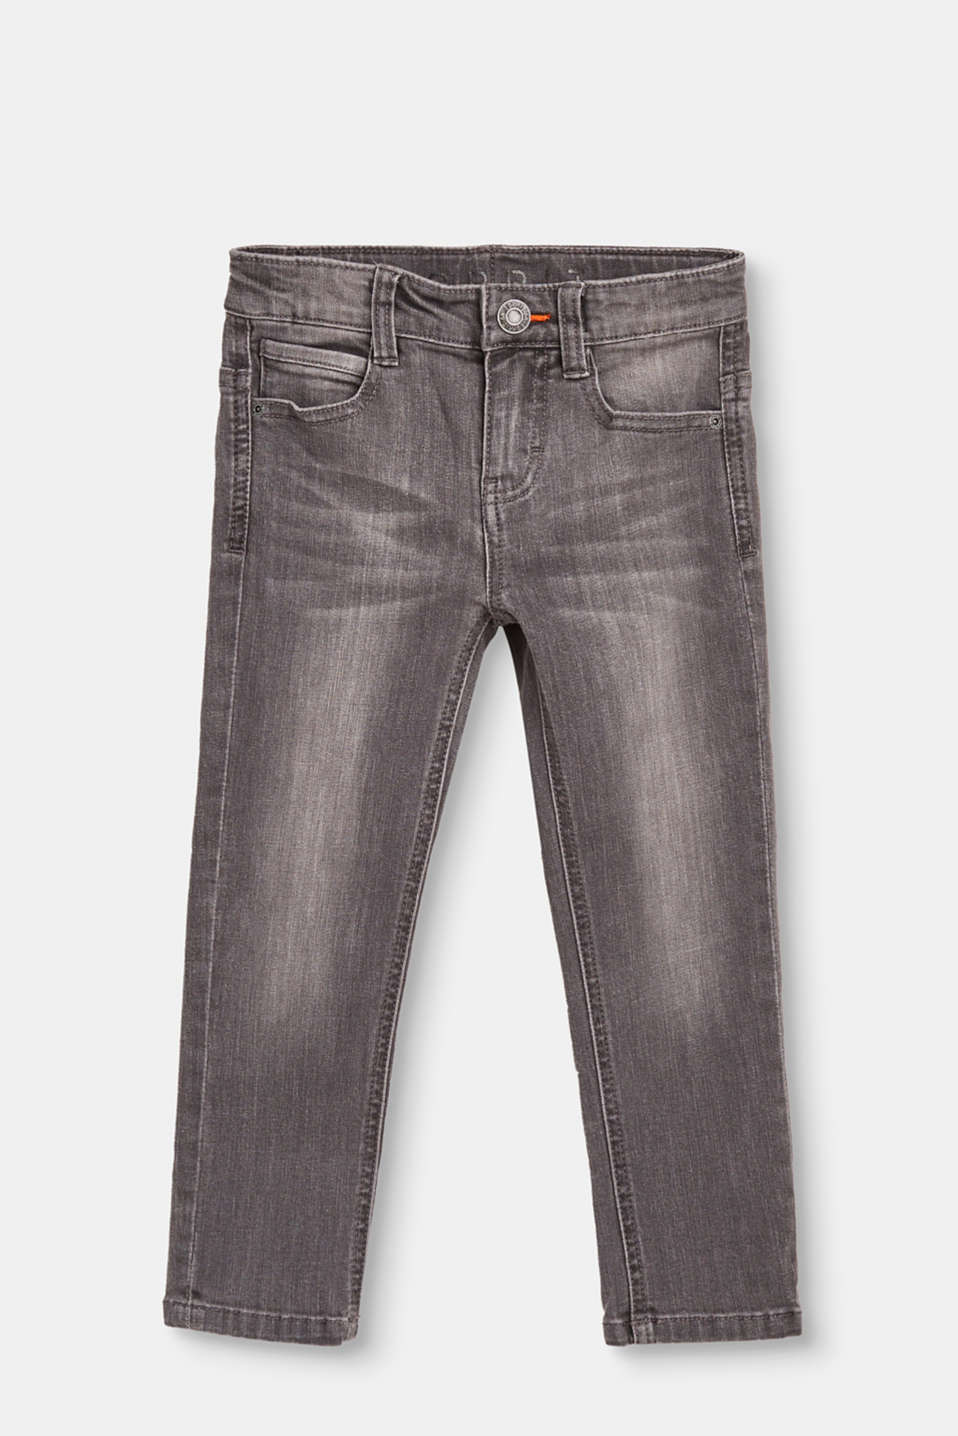 Esprit - Mega stretchy jeans in a light vintage wash